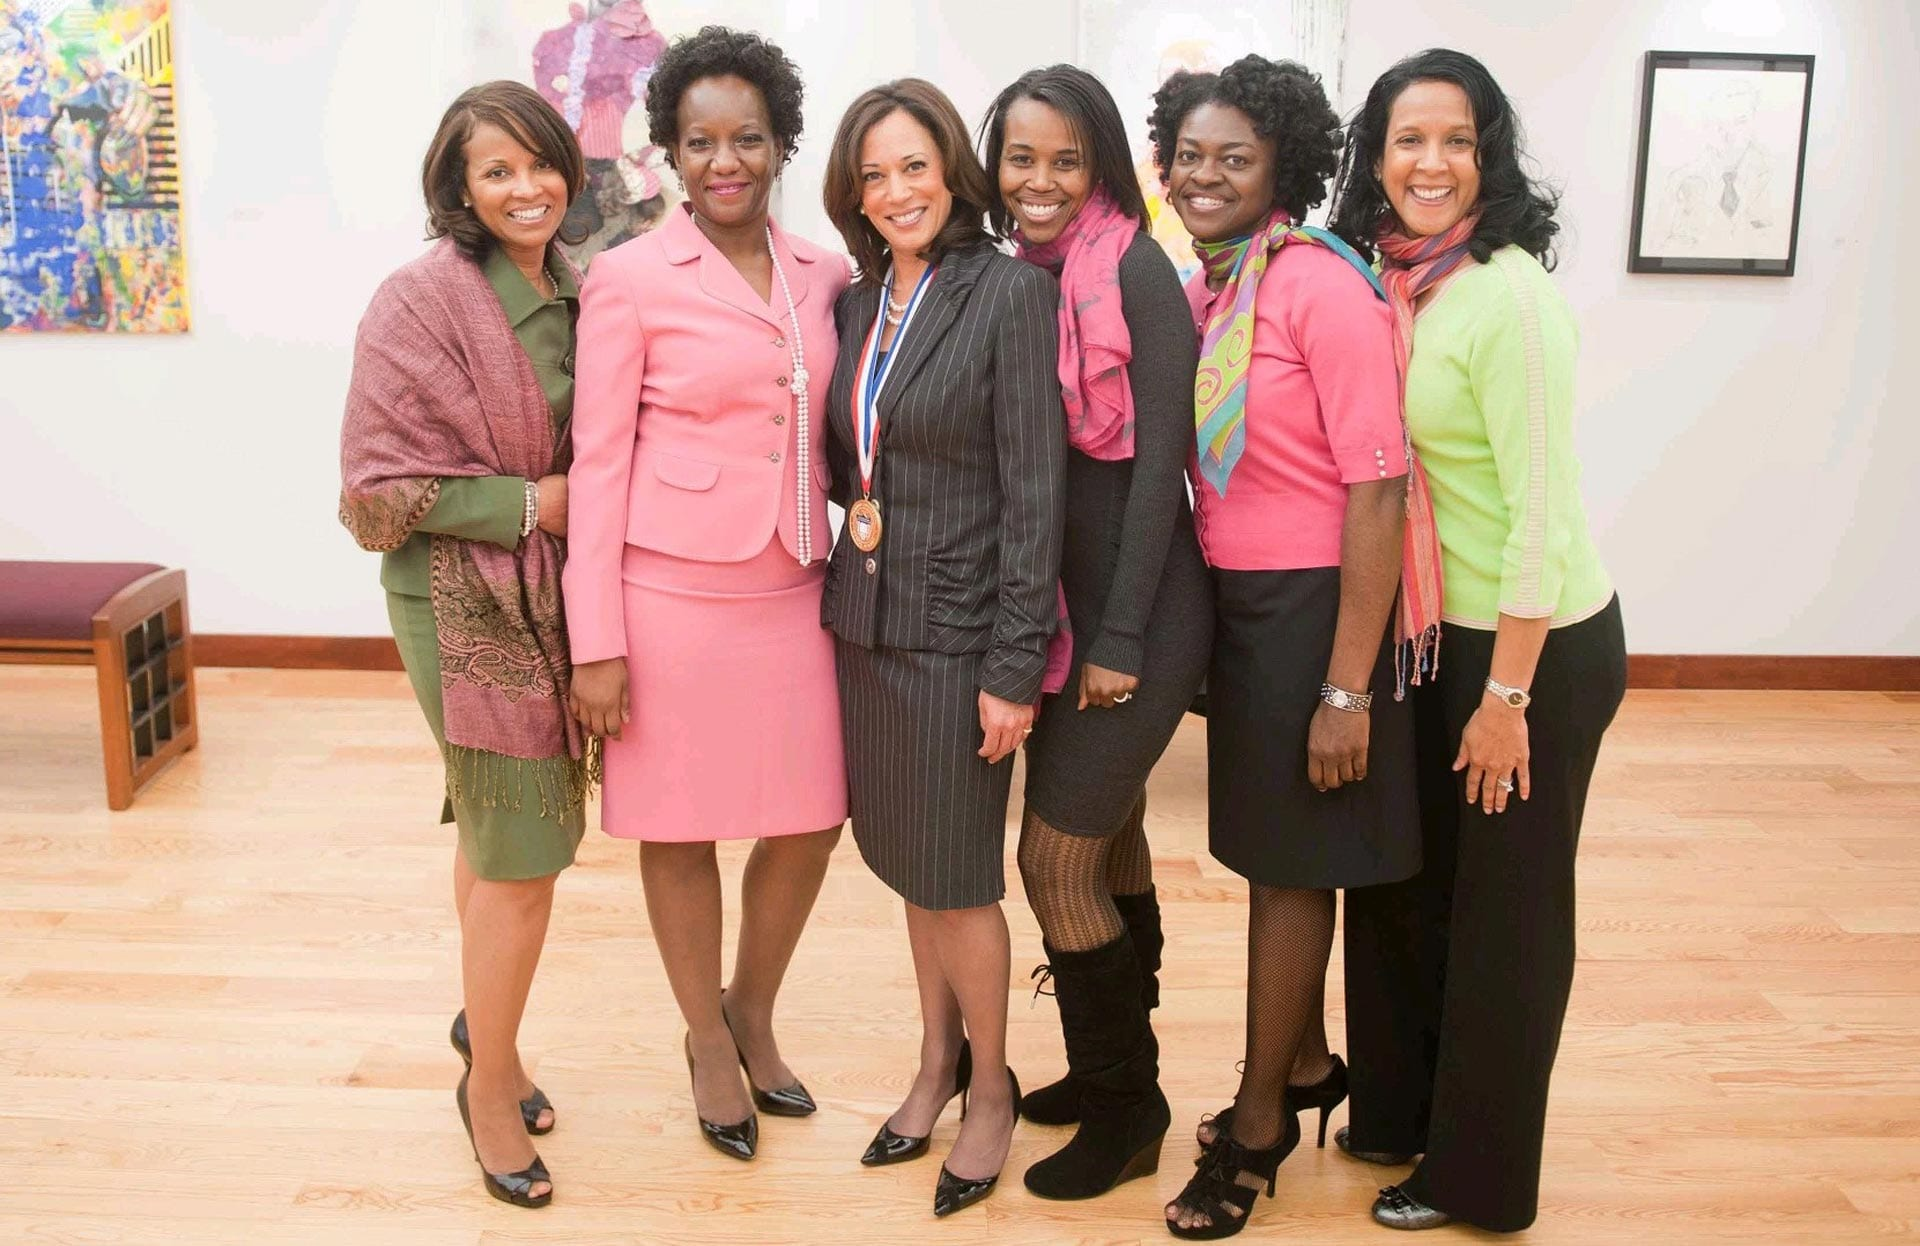 Kamala Harris standing with a group of women.